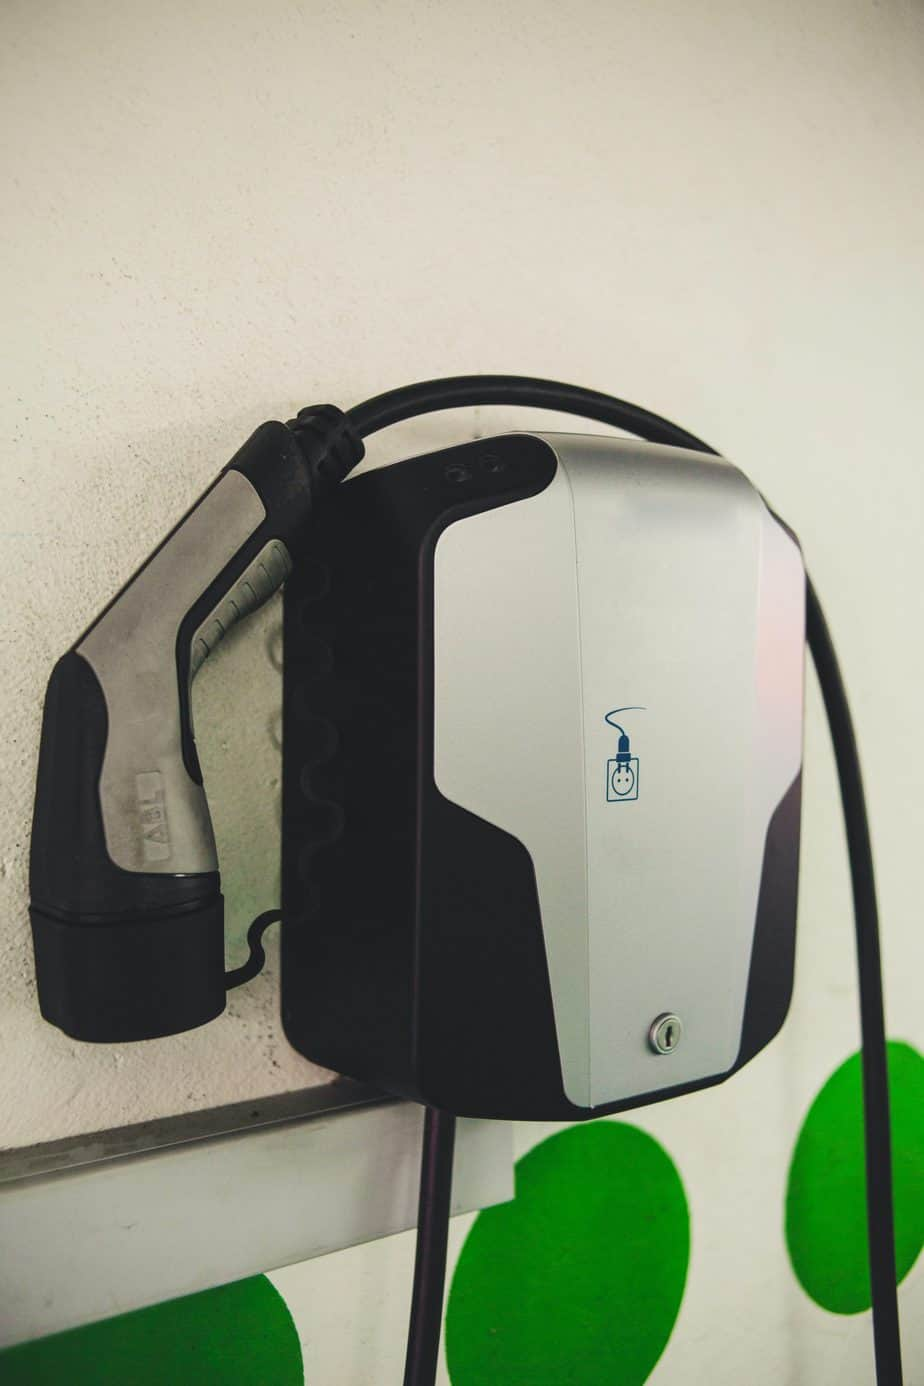 owning-an-electric-car-without-a-charger